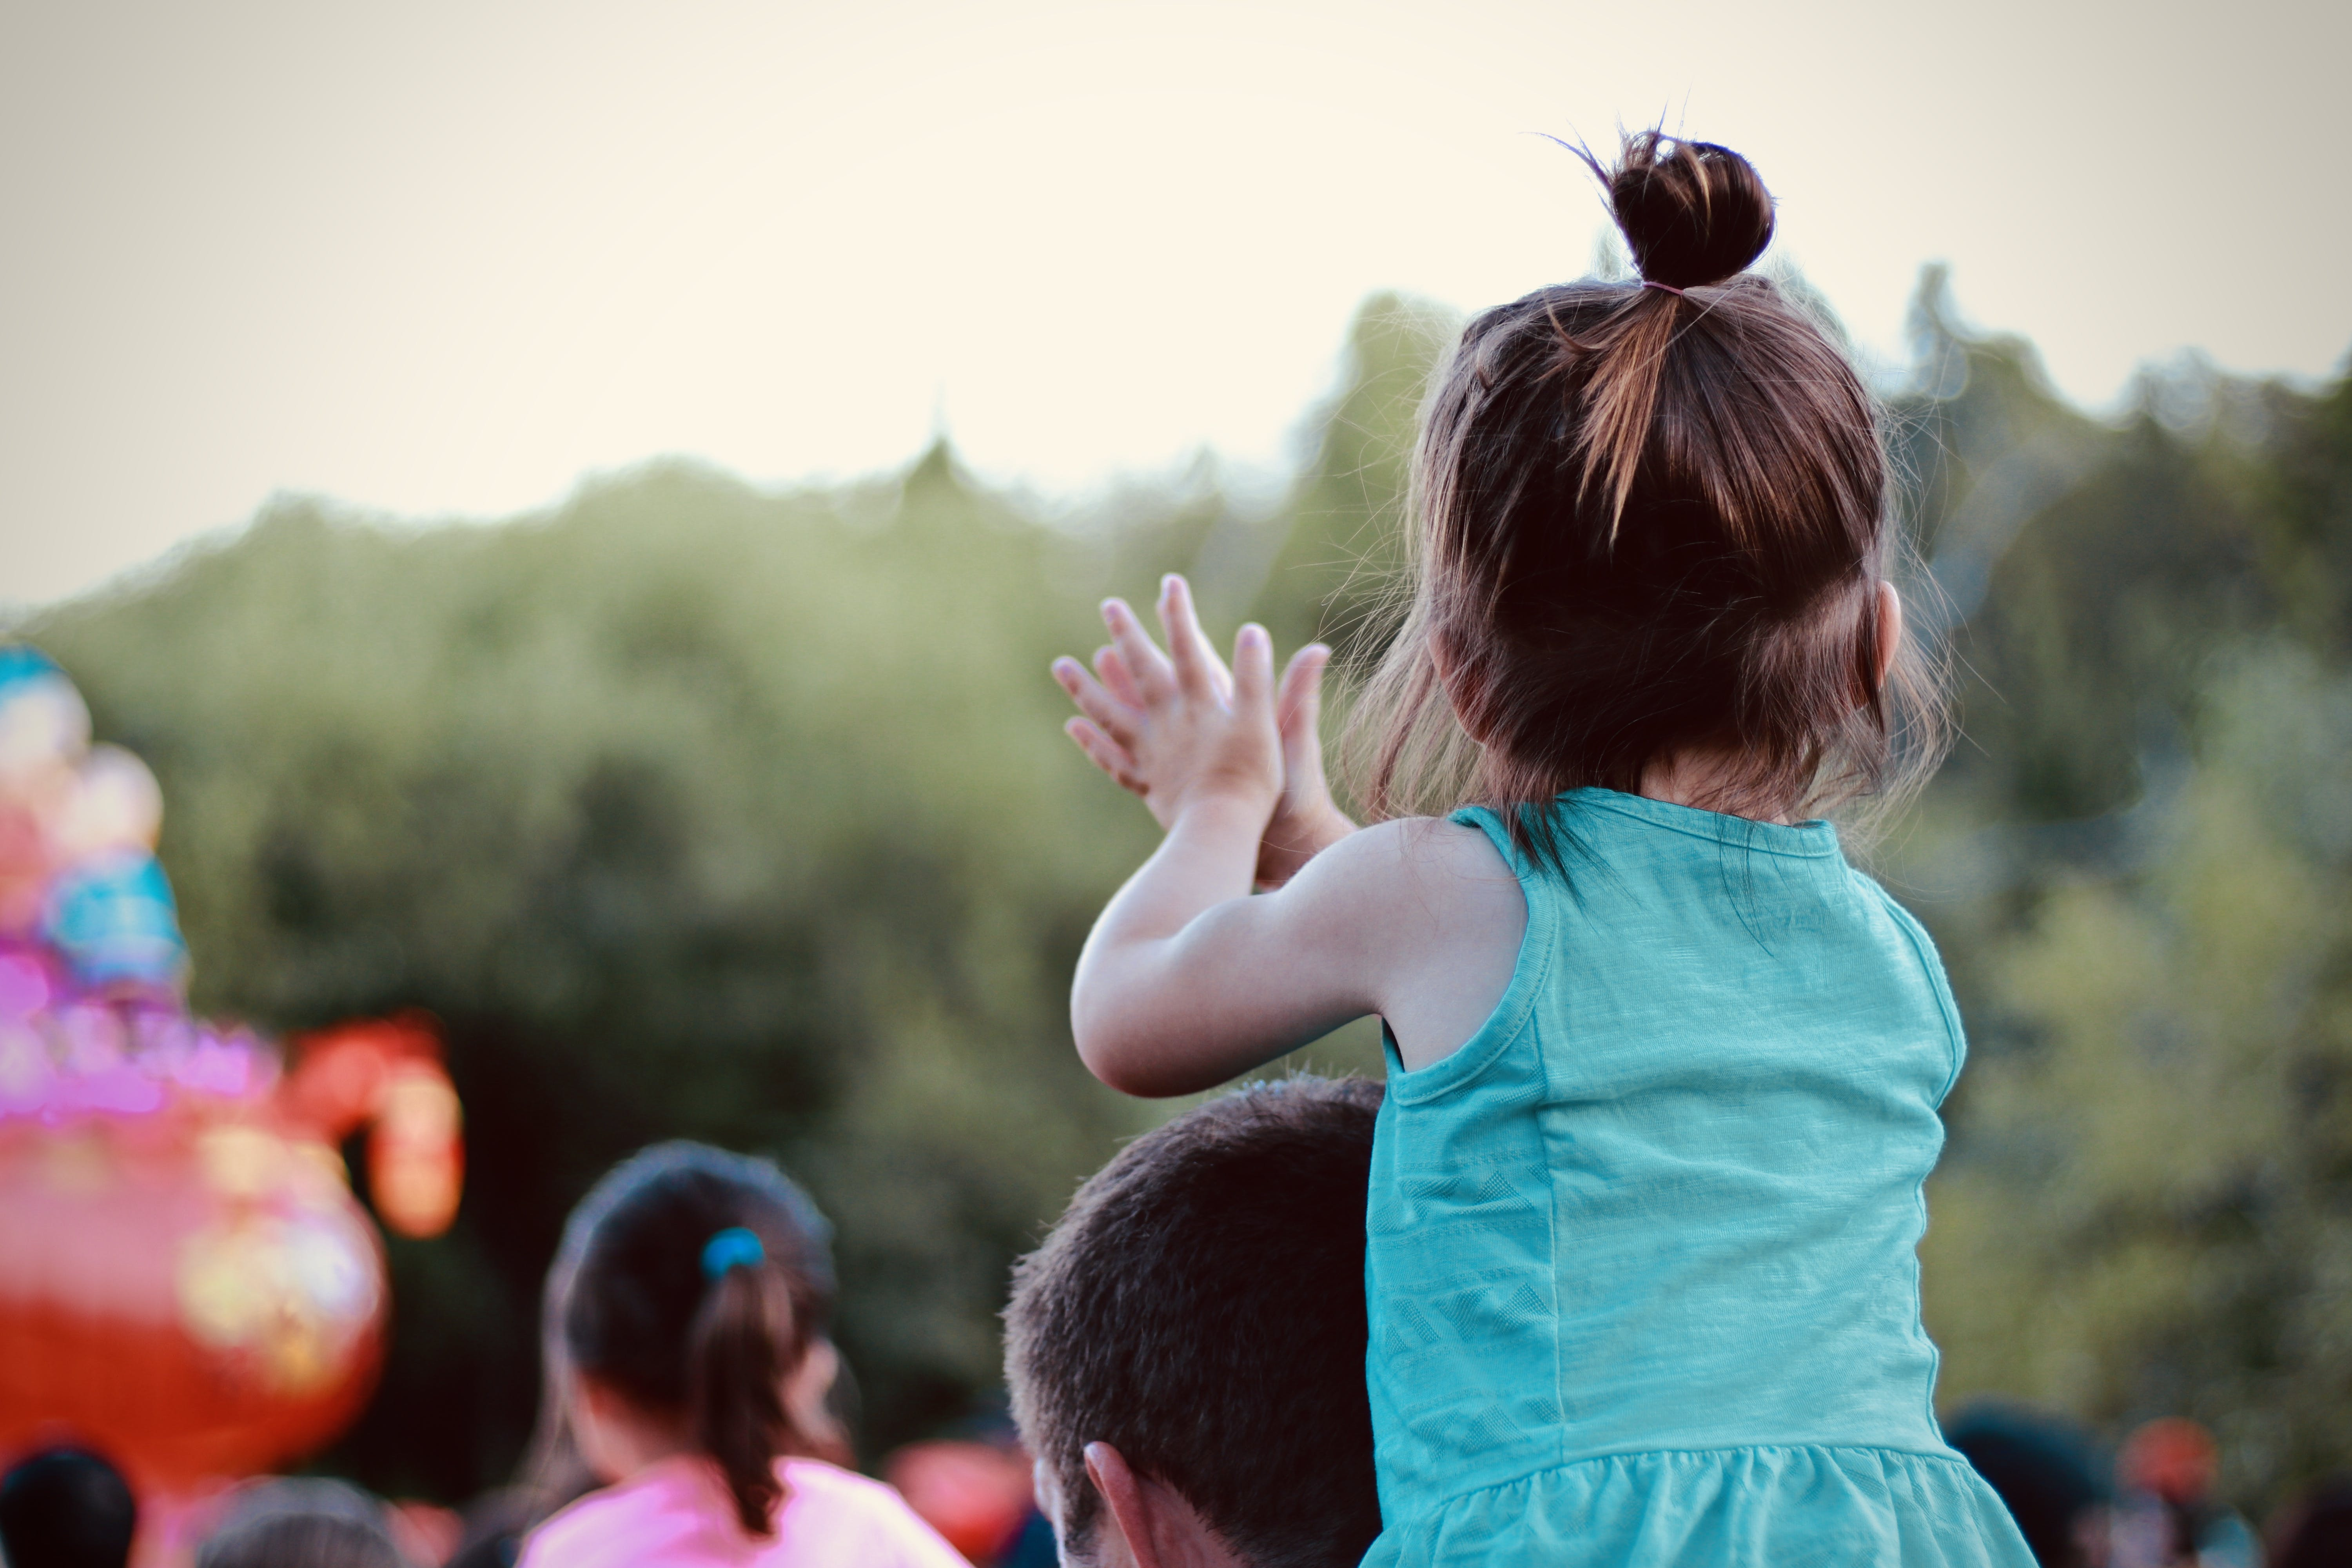 Shallow Focus Photography Of Girl Clapping